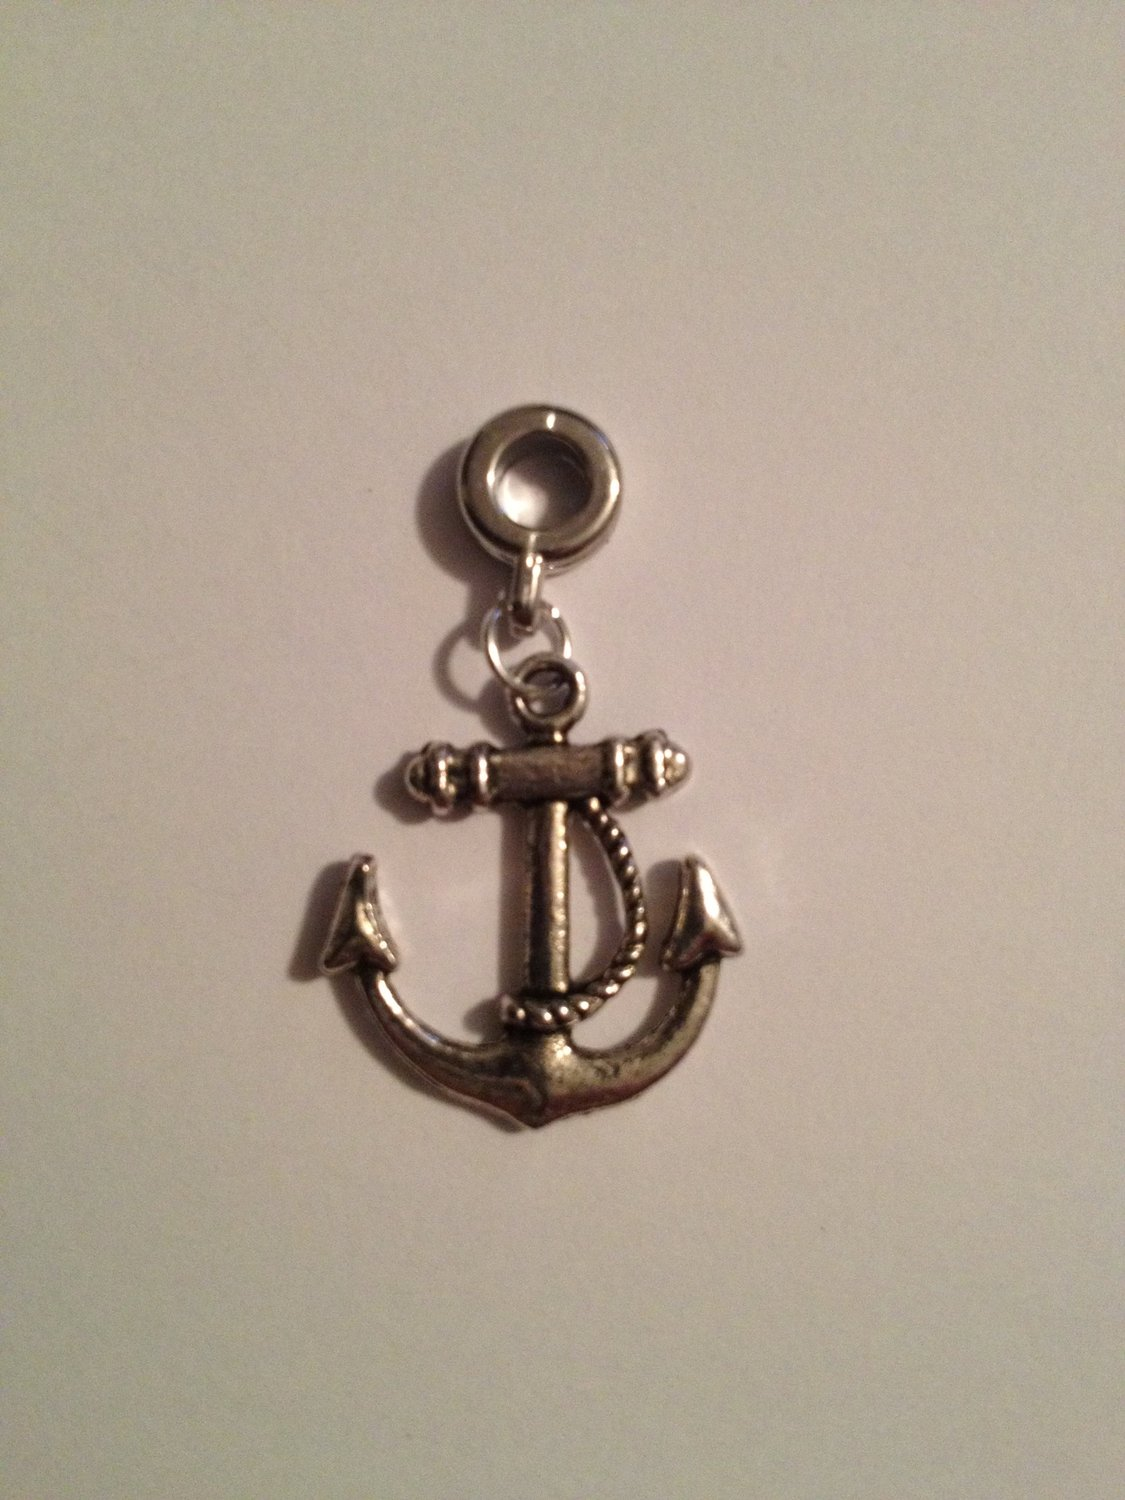 Divine Beads: Anchor Dangle Charm by Divine Beads © Simply Slides on Slides Off Your Bracelets and necklaces. Fits Pandora, Biagi, Tedora, Chamilia, Bacio, Troll and other European style charms & beads bracelets.